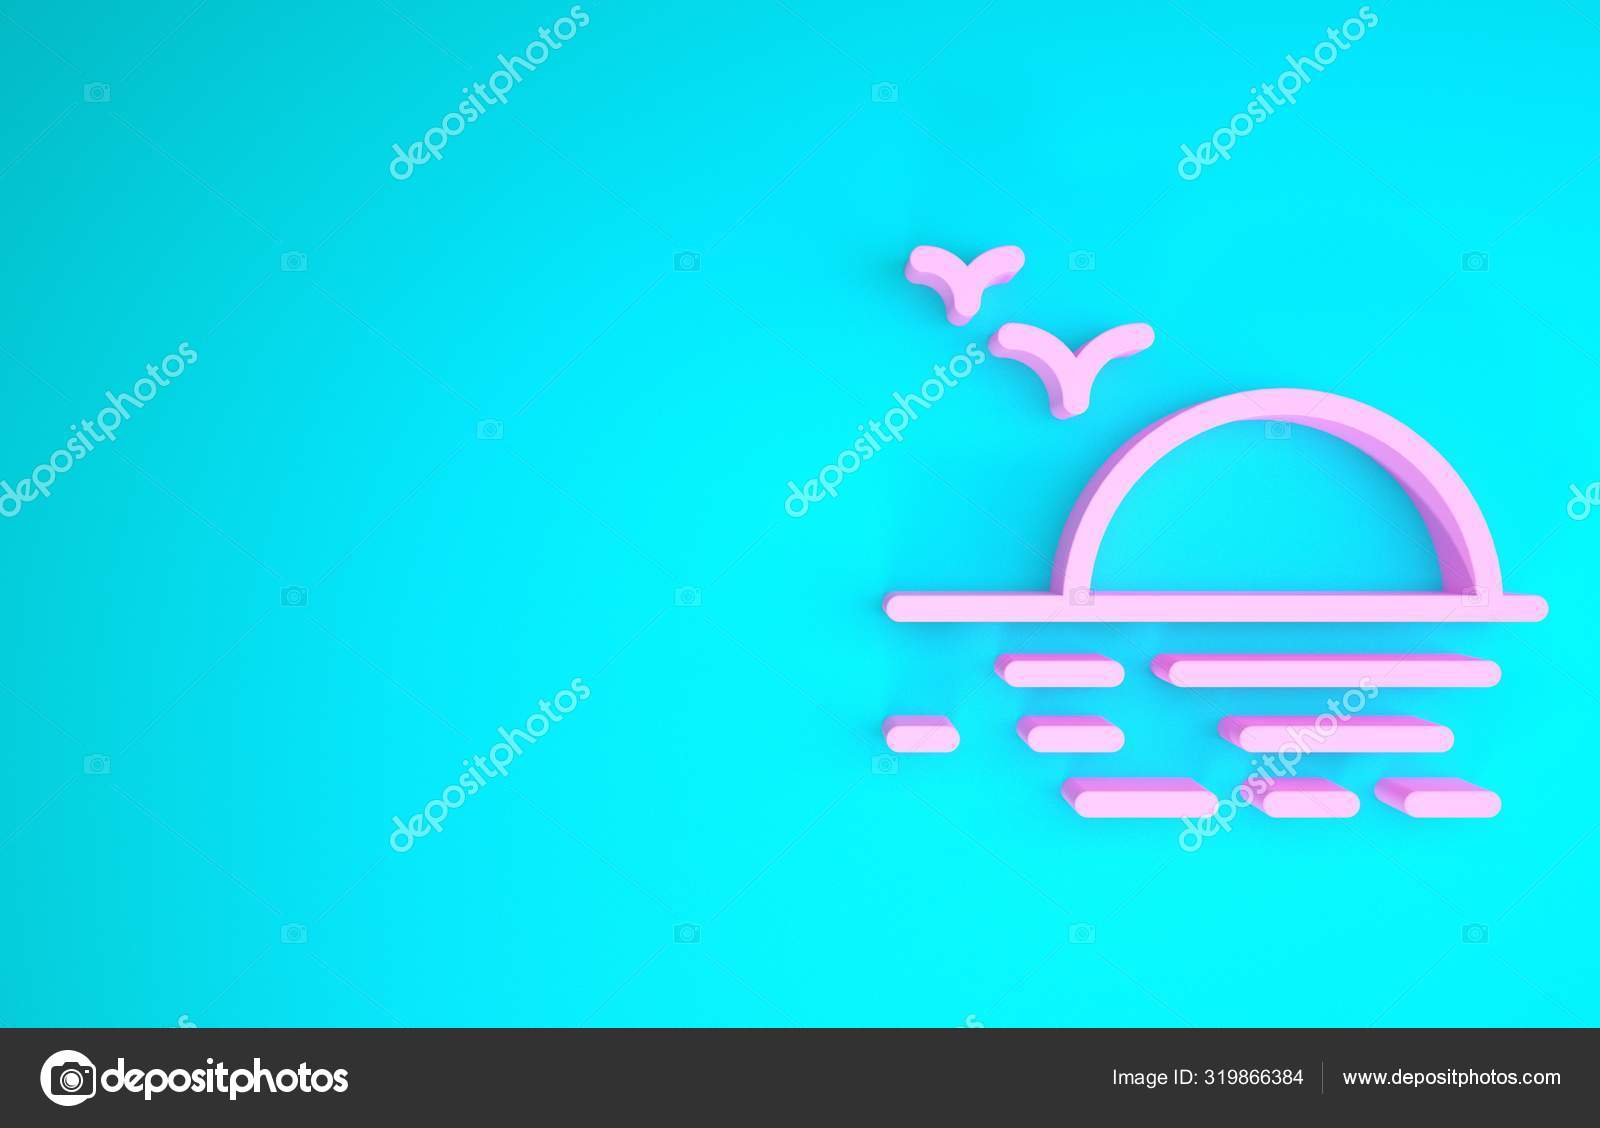 pink sunset icon isolated on blue background minimalism concept 3d illustration 3d render stock photo c vectorvalera gmail com 319866384 https depositphotos com 319866384 stock photo pink sunset icon isolated on html